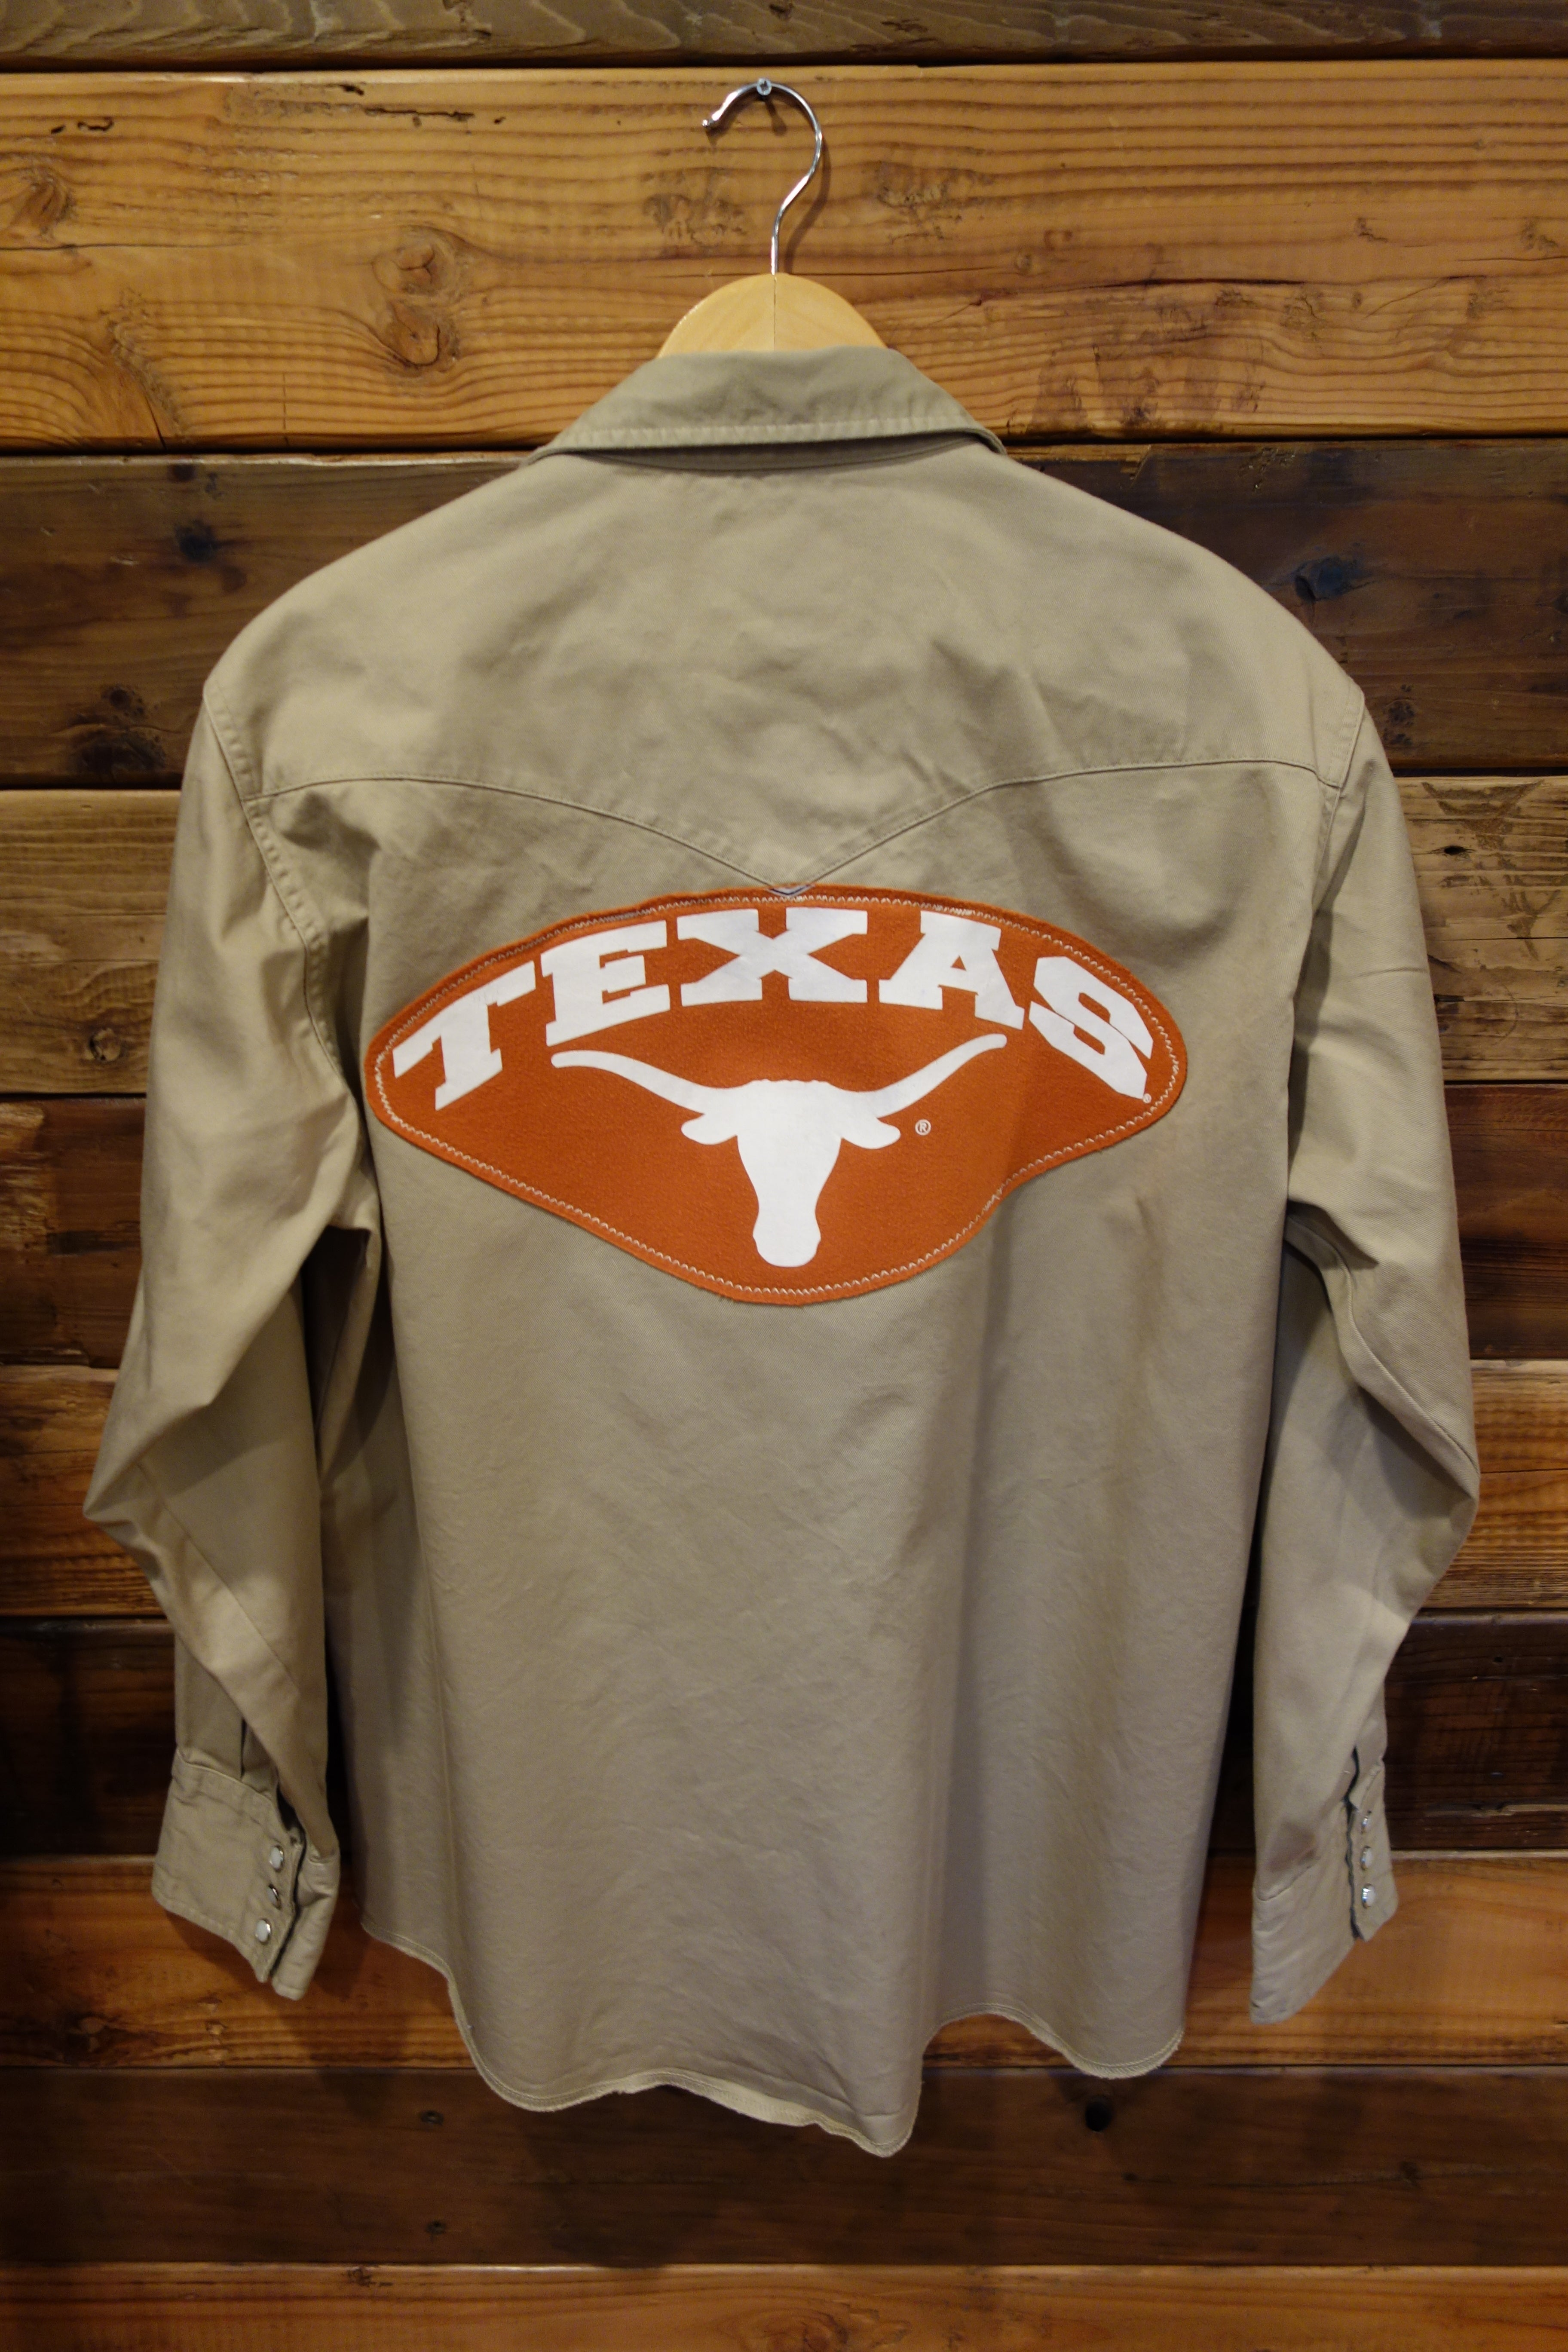 University of Texas Longhorns one of a kind vintage Wrangler western denim shirt